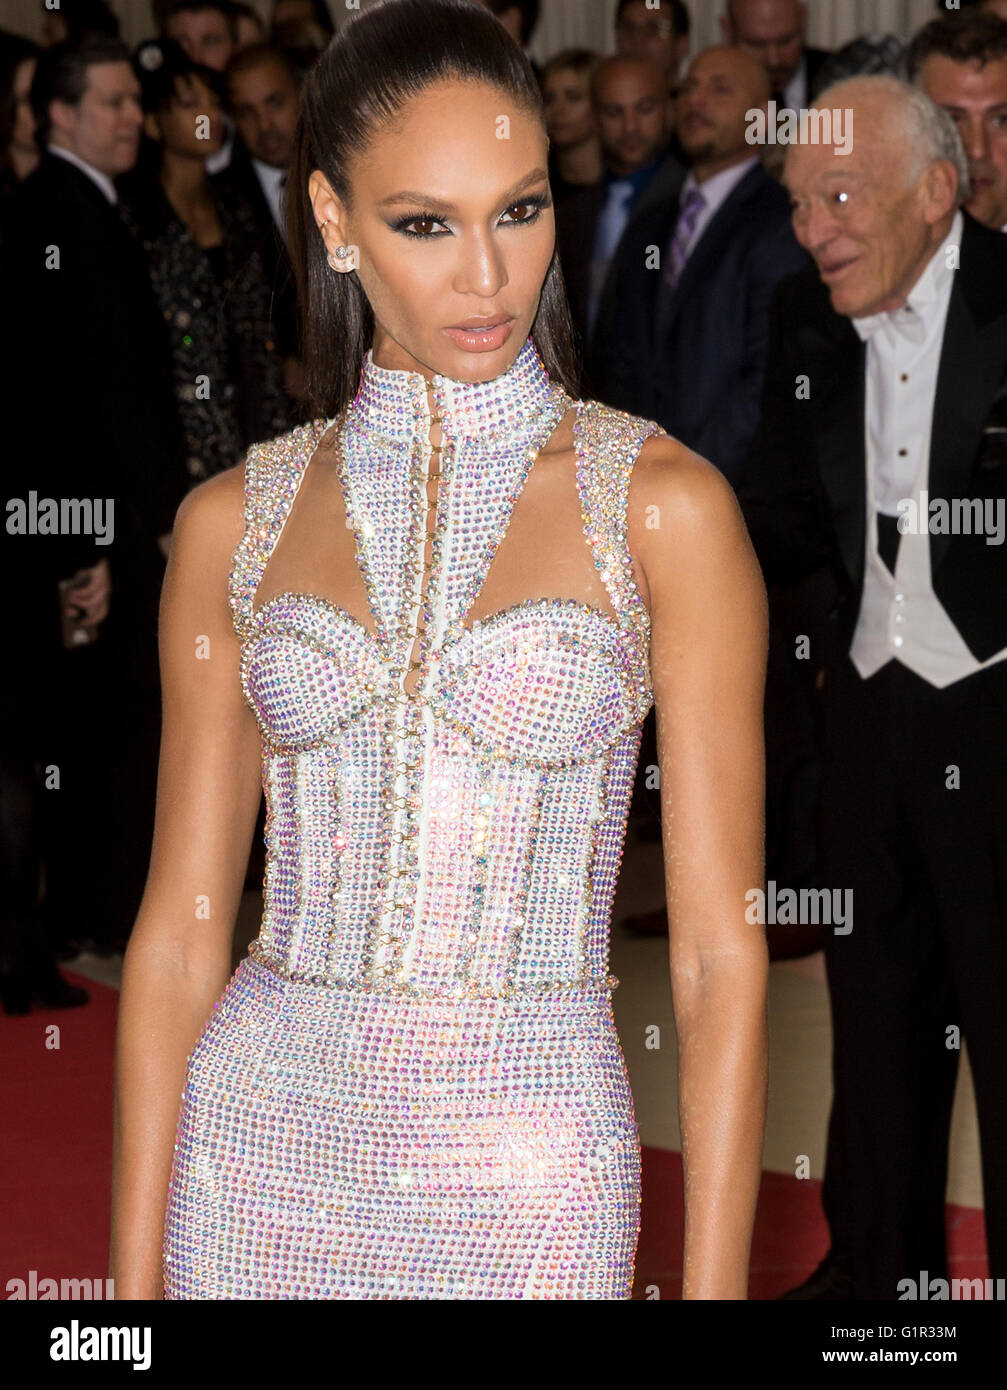 New York City, USA - May 2, 2016: Joan Smalls attends the 2016 Met Gala - Stock Image